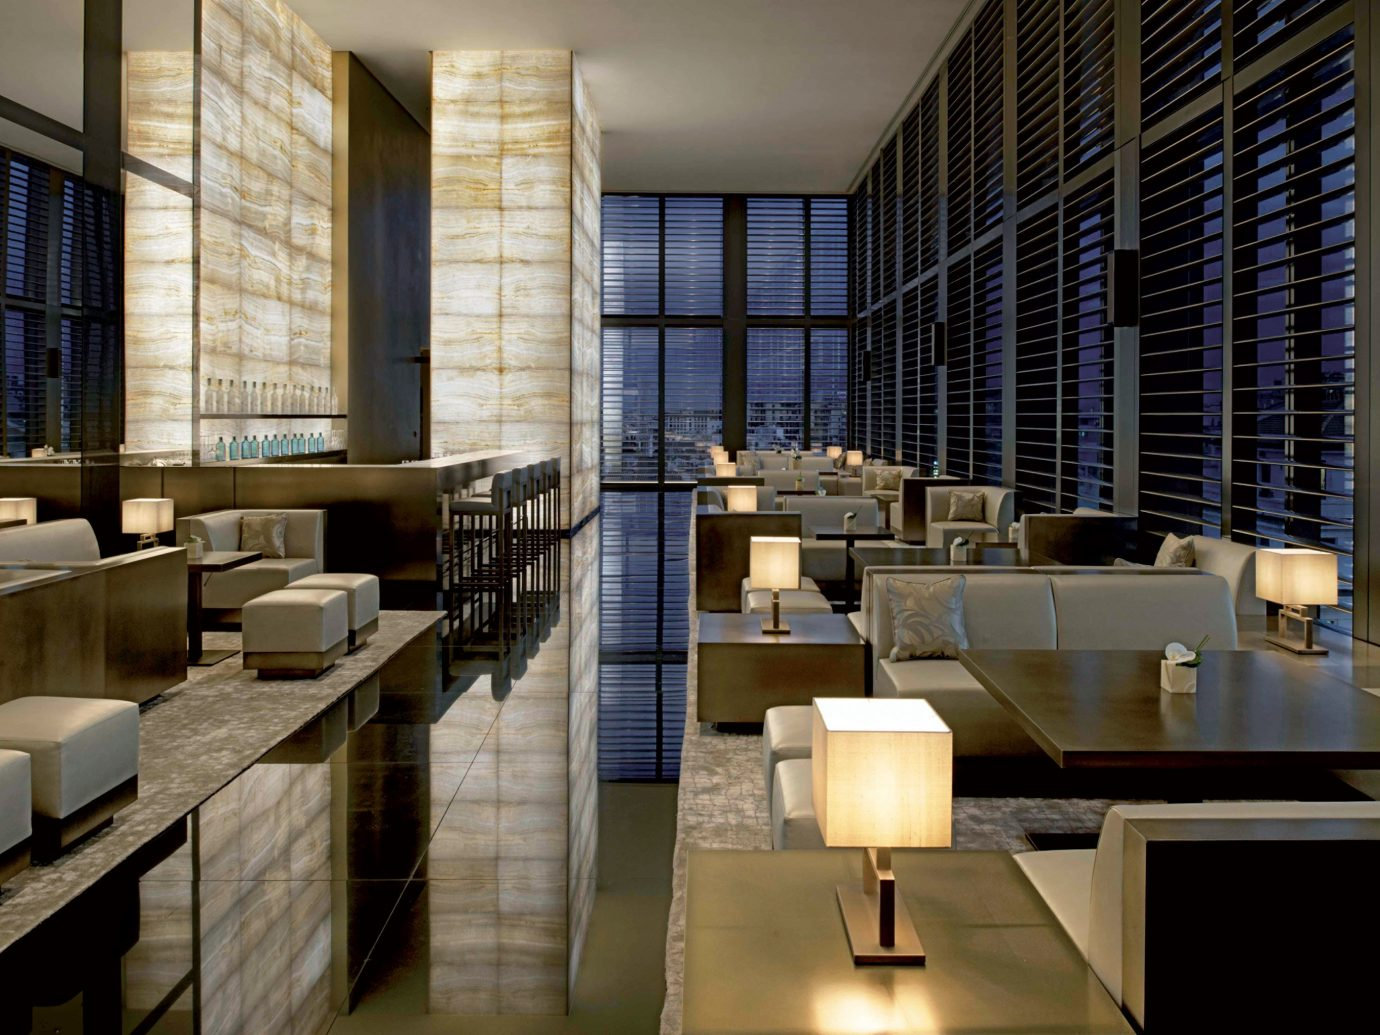 Bar Drink Eat Hip Hotels Italy Milan Modern window indoor room Lobby Architecture interior design condominium headquarters Design lighting convention center window covering professional office overlooking tub furniture